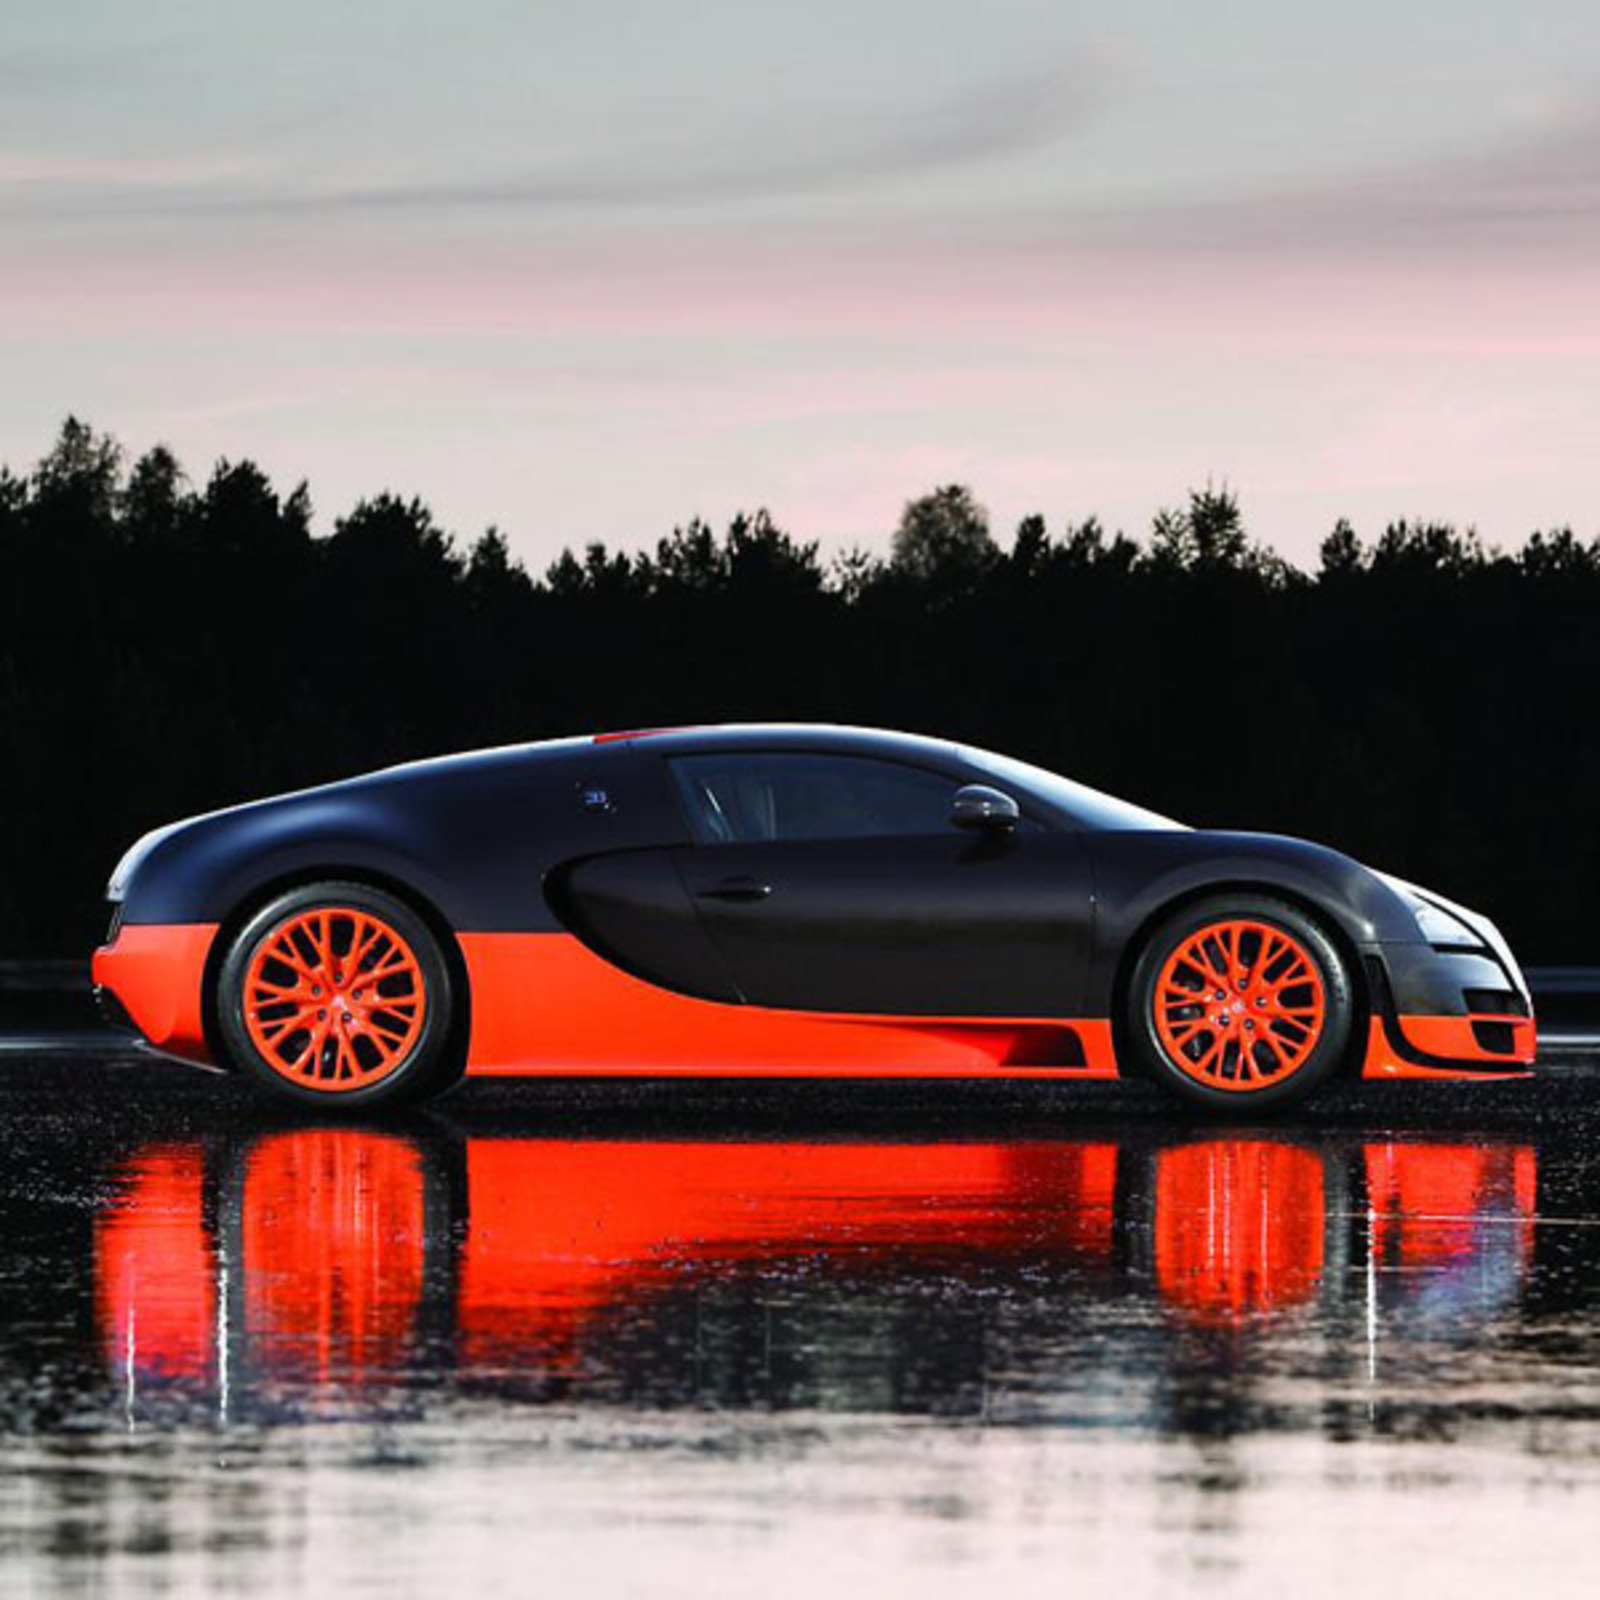 Taking A Bugatti Veyron To Carmax For A Free: Veyron 16.4 Super Sport